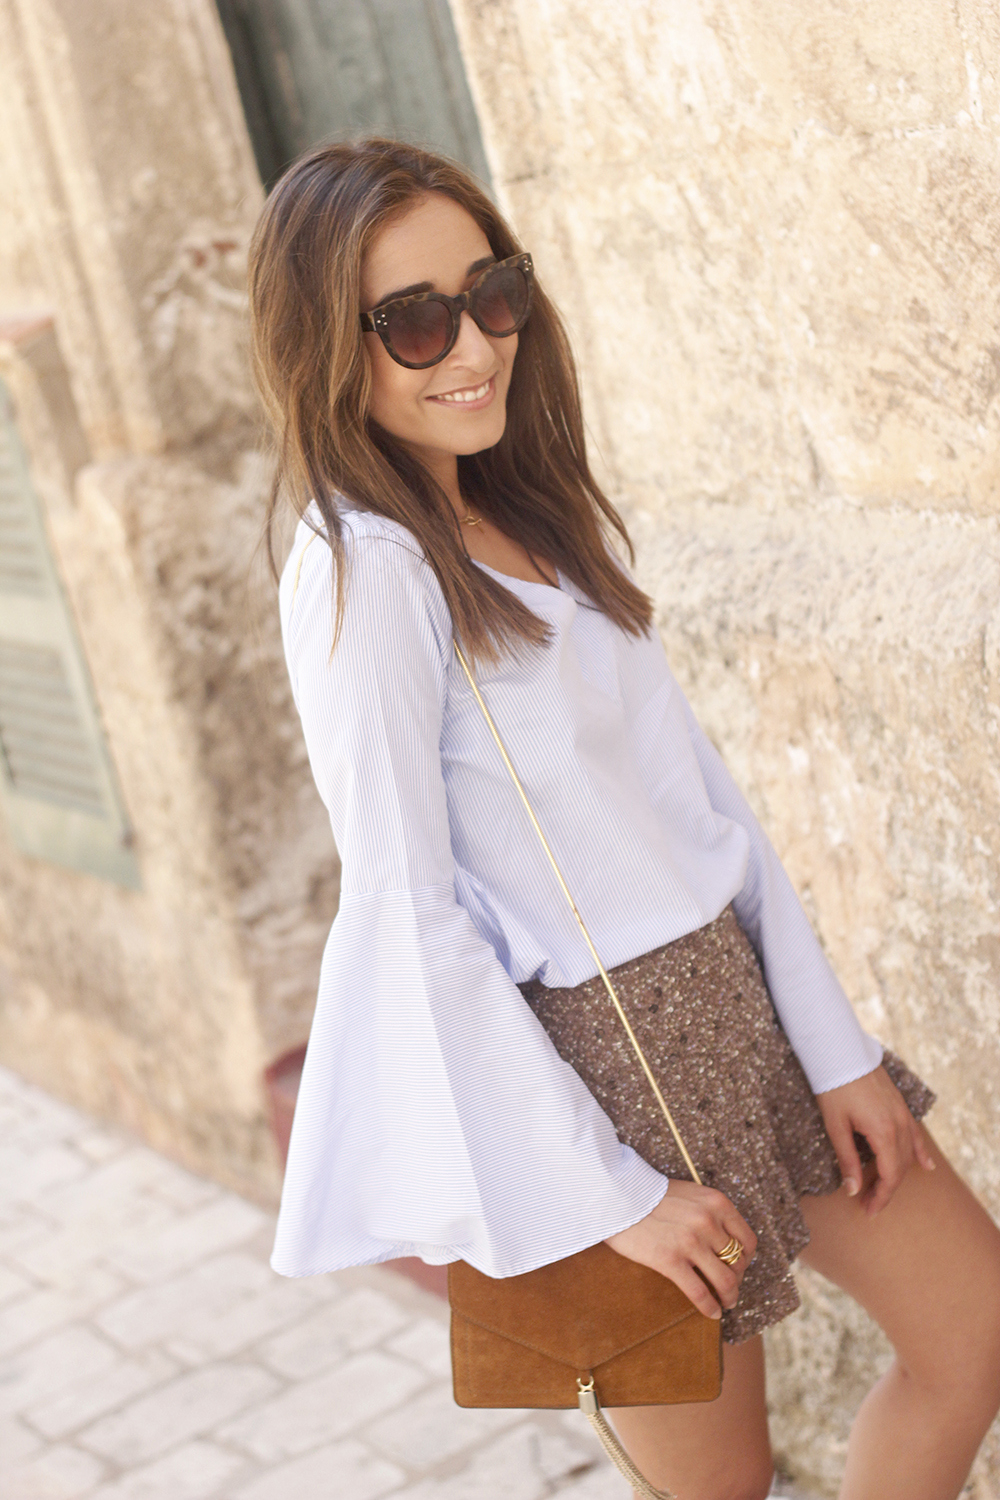 sequined shorts bell sleeves striped shirt summer flat sandals summer fashion outfit15